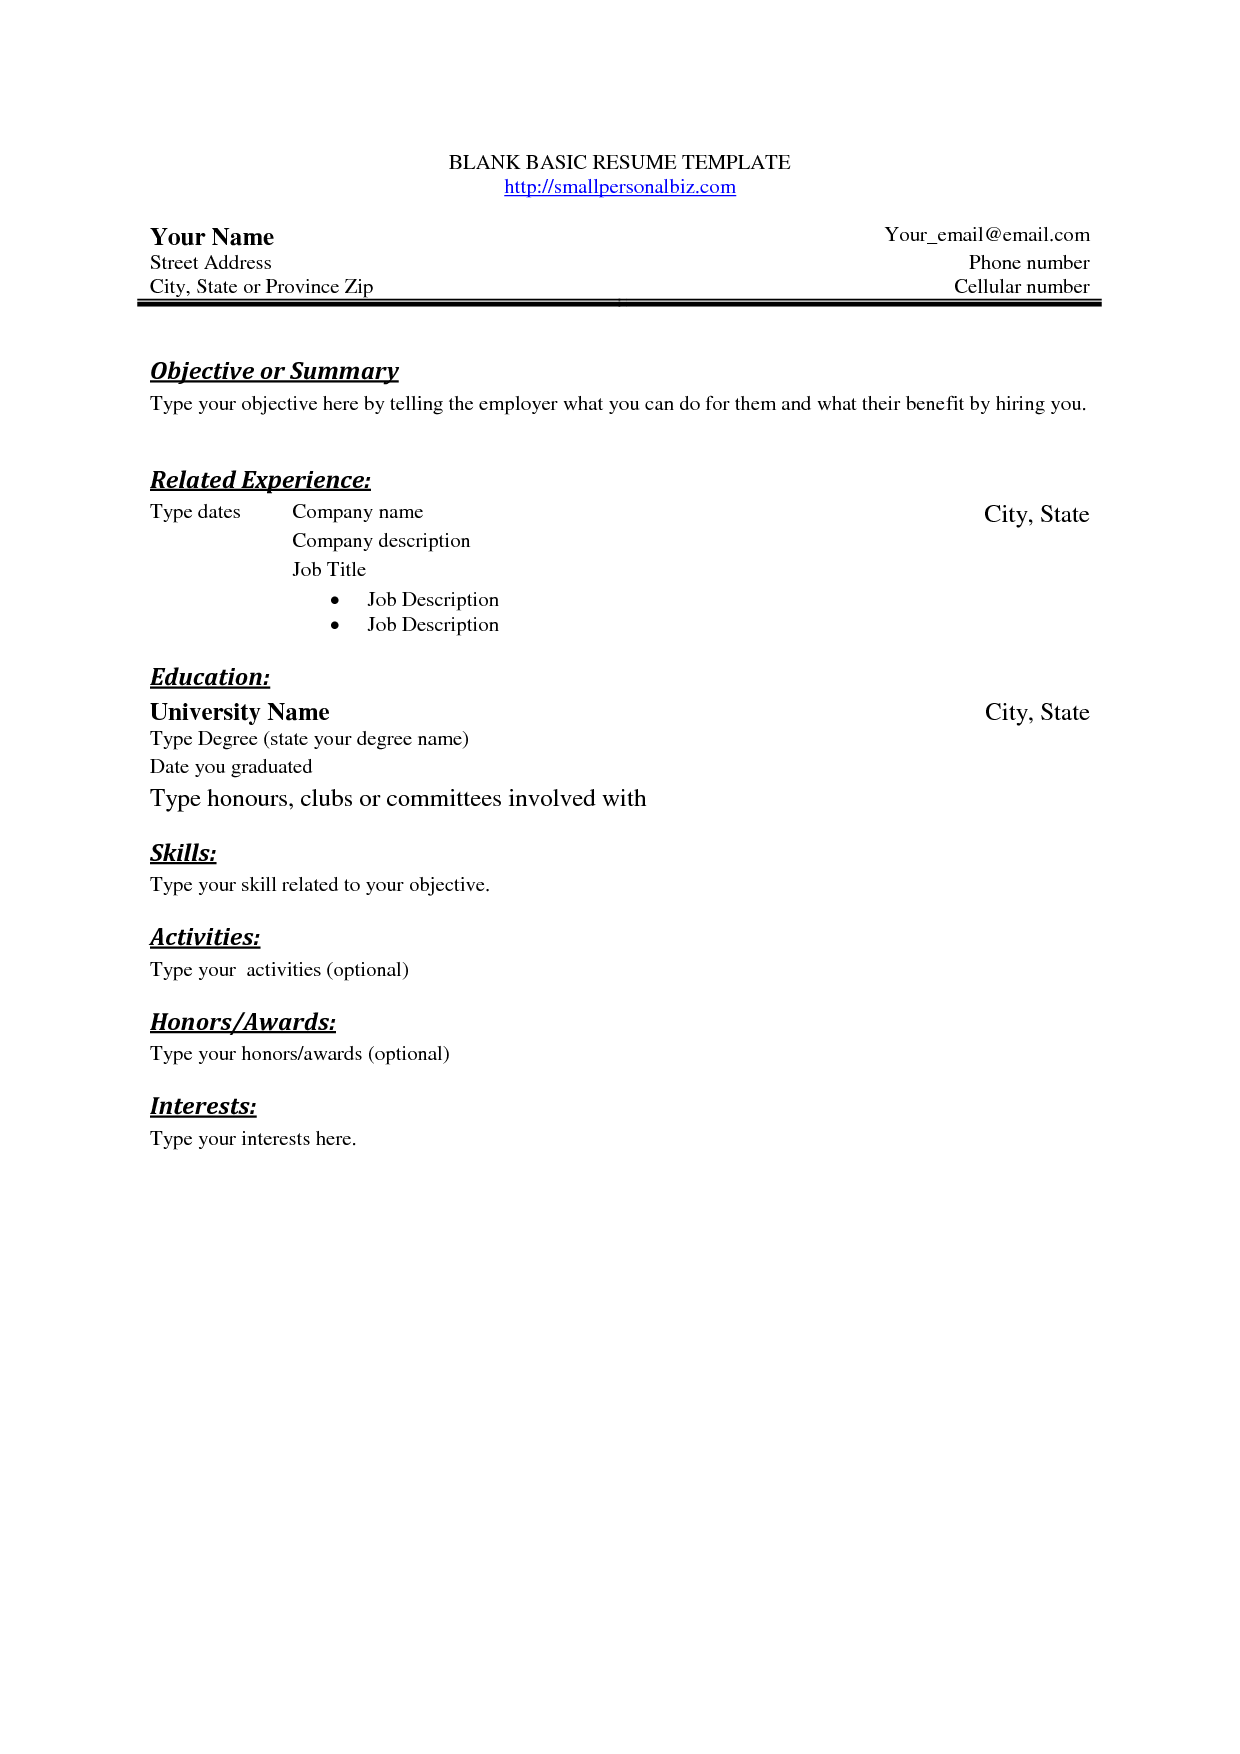 Simple Resume Examples Stylist And Luxury Simple Resume Layout 10 Free Basic Blank Resume